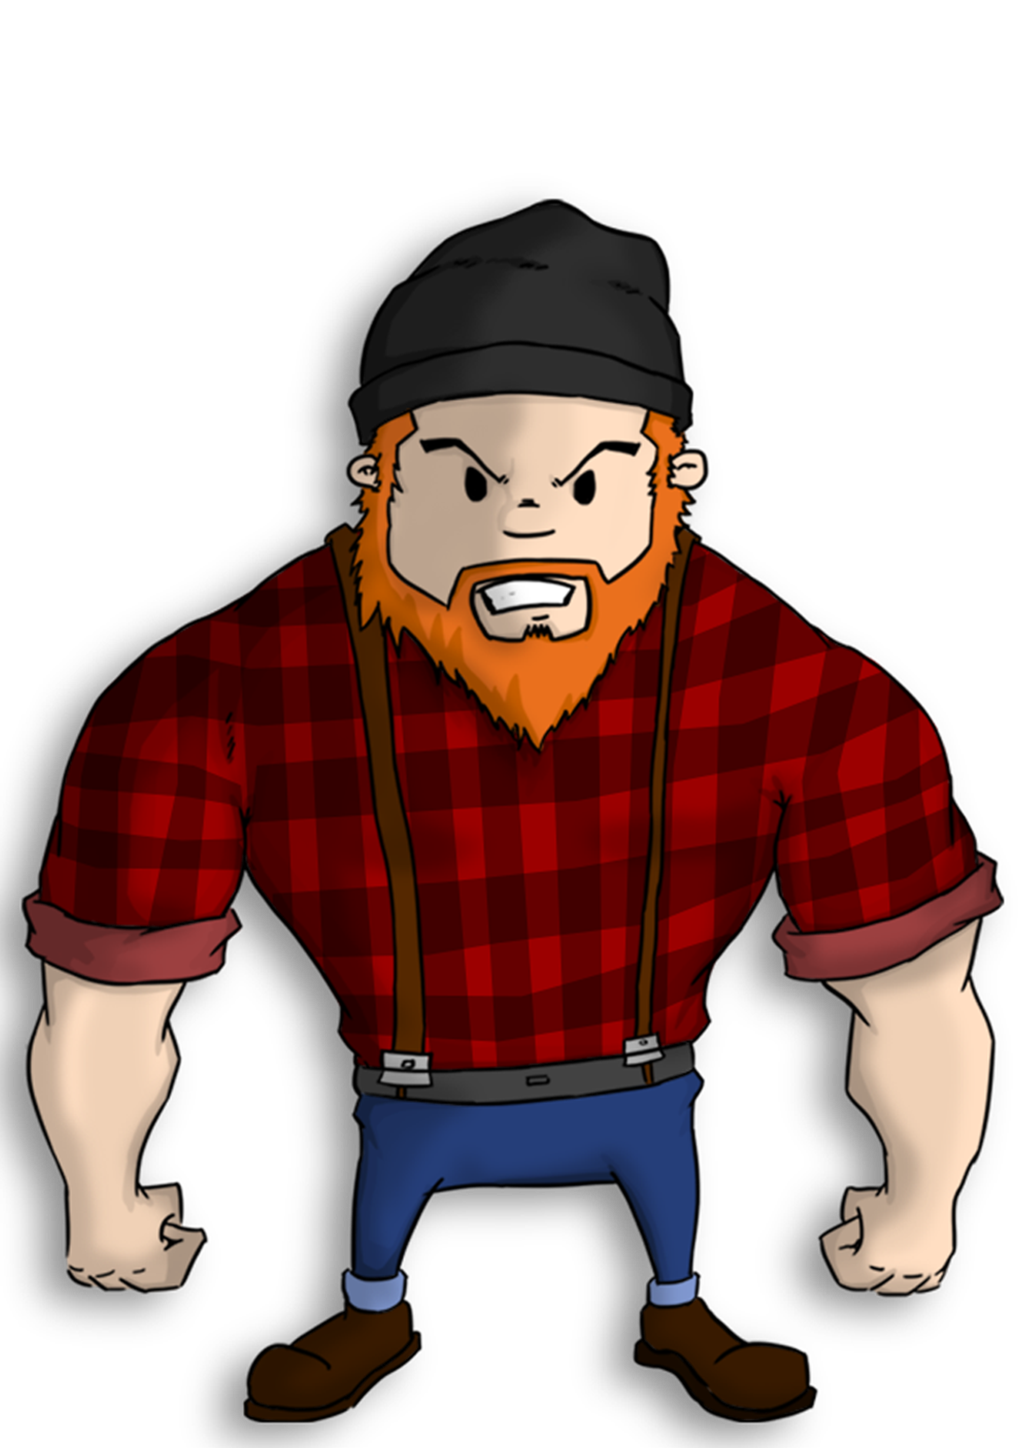 Lumberjack clipart animated. Image result for cartoon